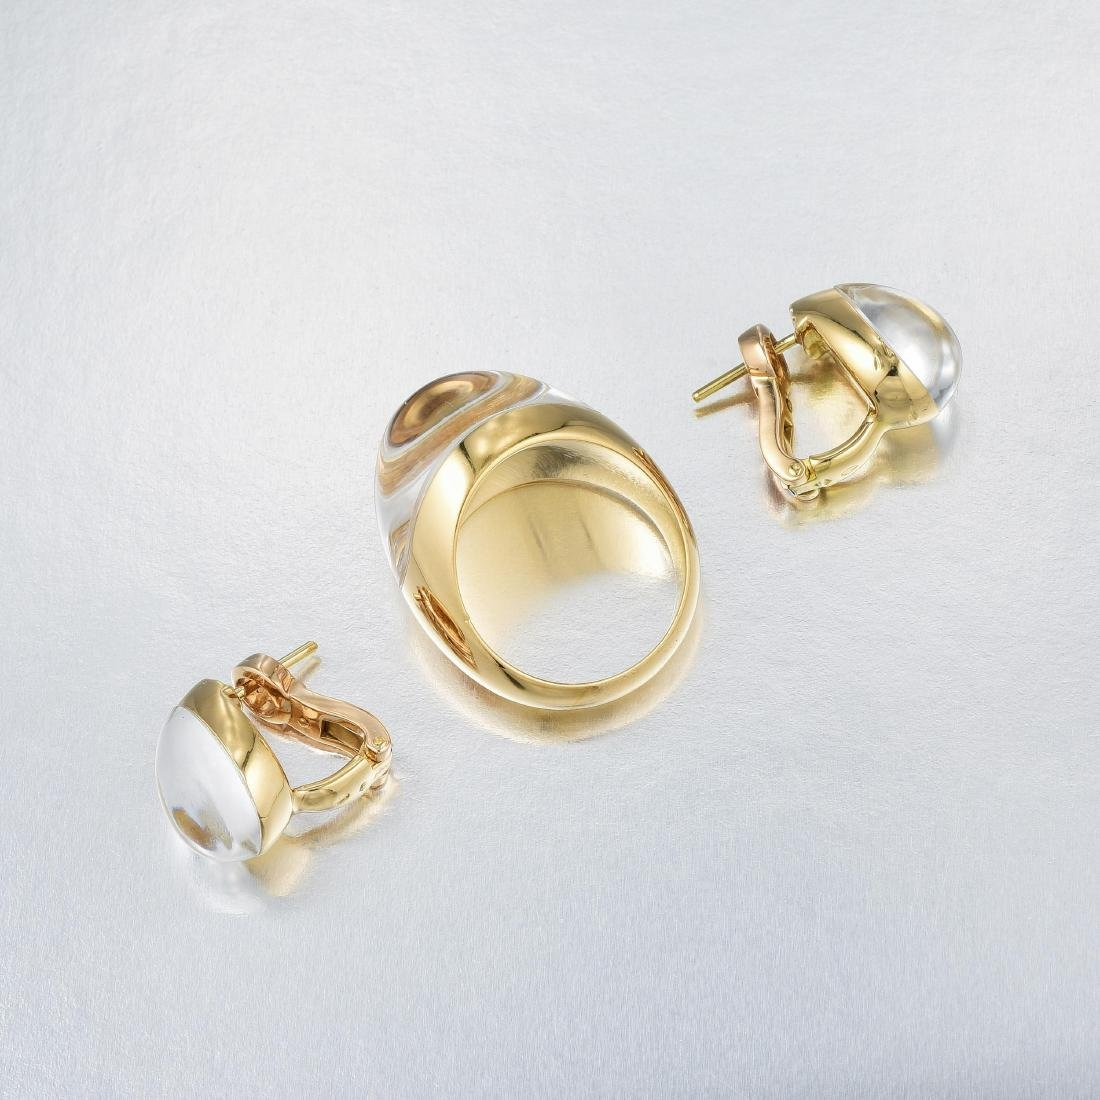 Cartier Rock Crystal and Diamond Earring and Ring Set, - 5